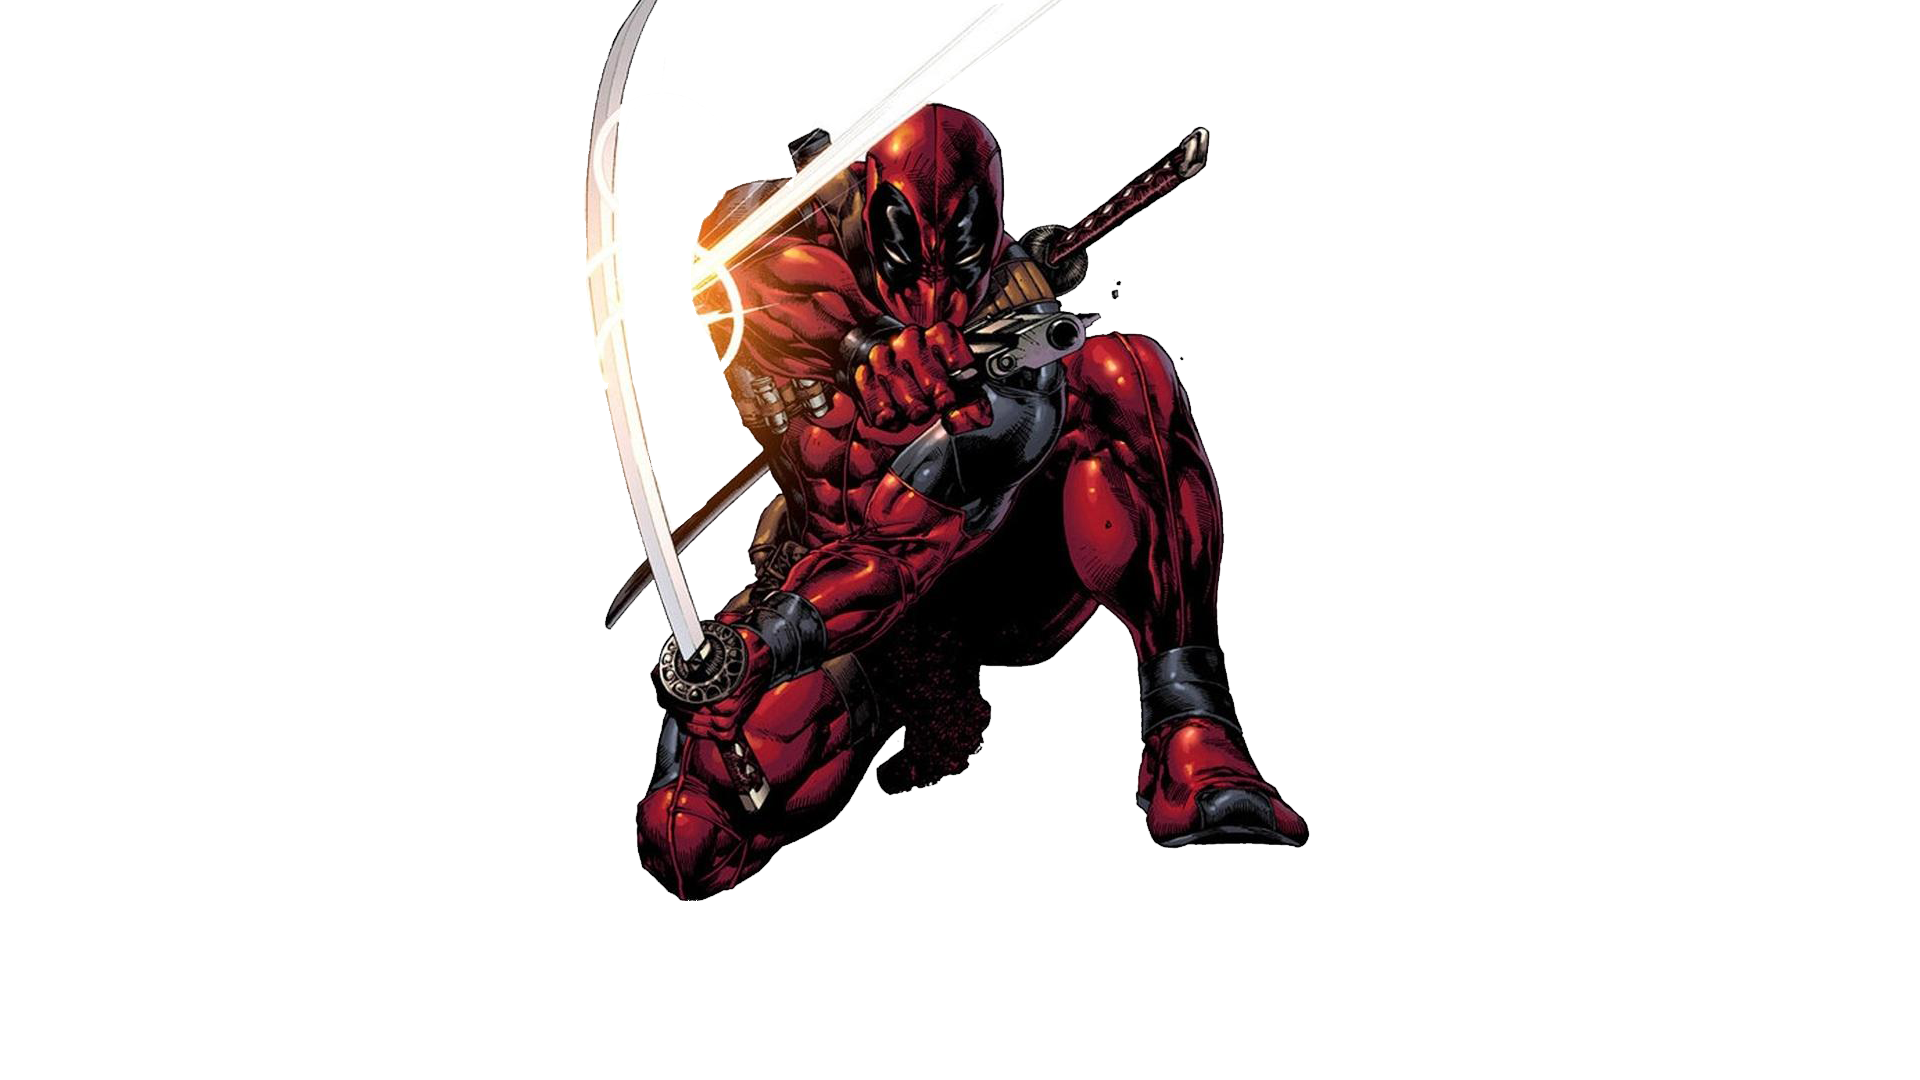 Deadpool Transparent Background.